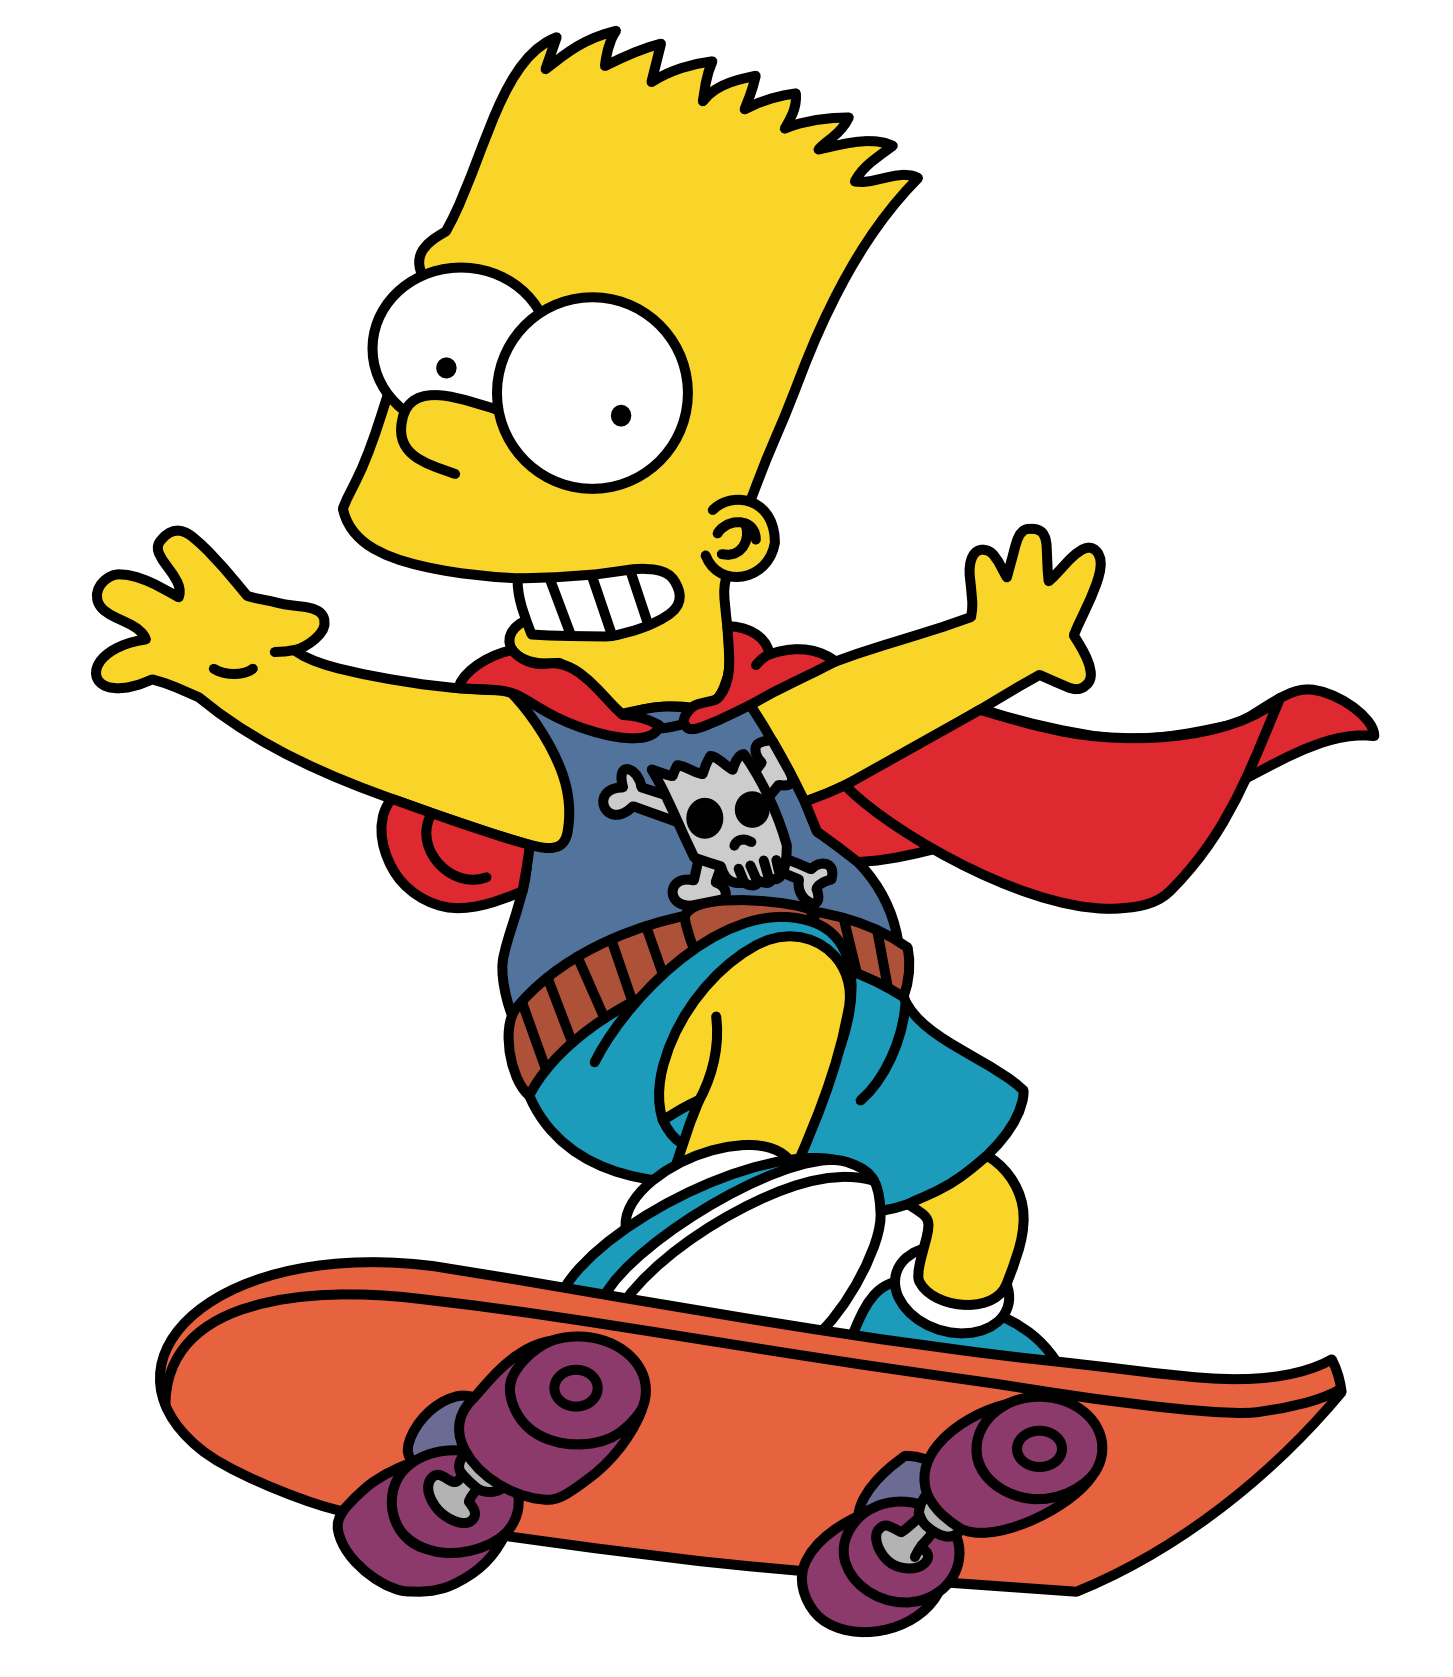 The simpsons png. Bart simpson